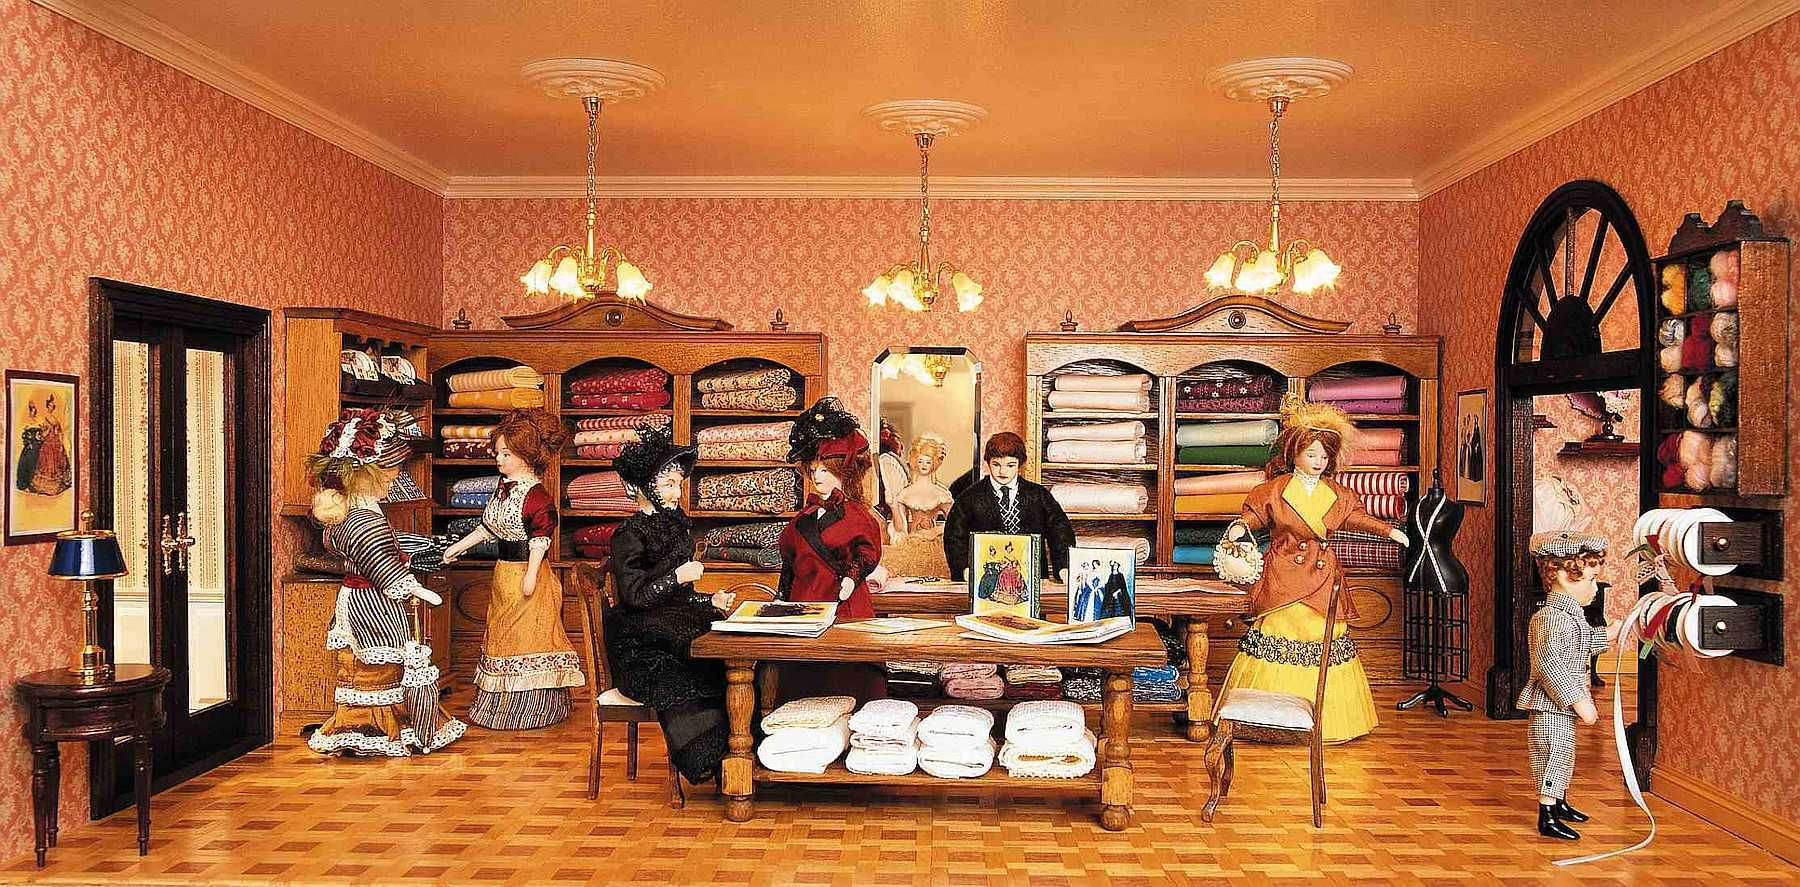 Cloth And Fabric Shop Miniature Room Boxes Pinterest Fabric Shop Fabrics And Miniatures